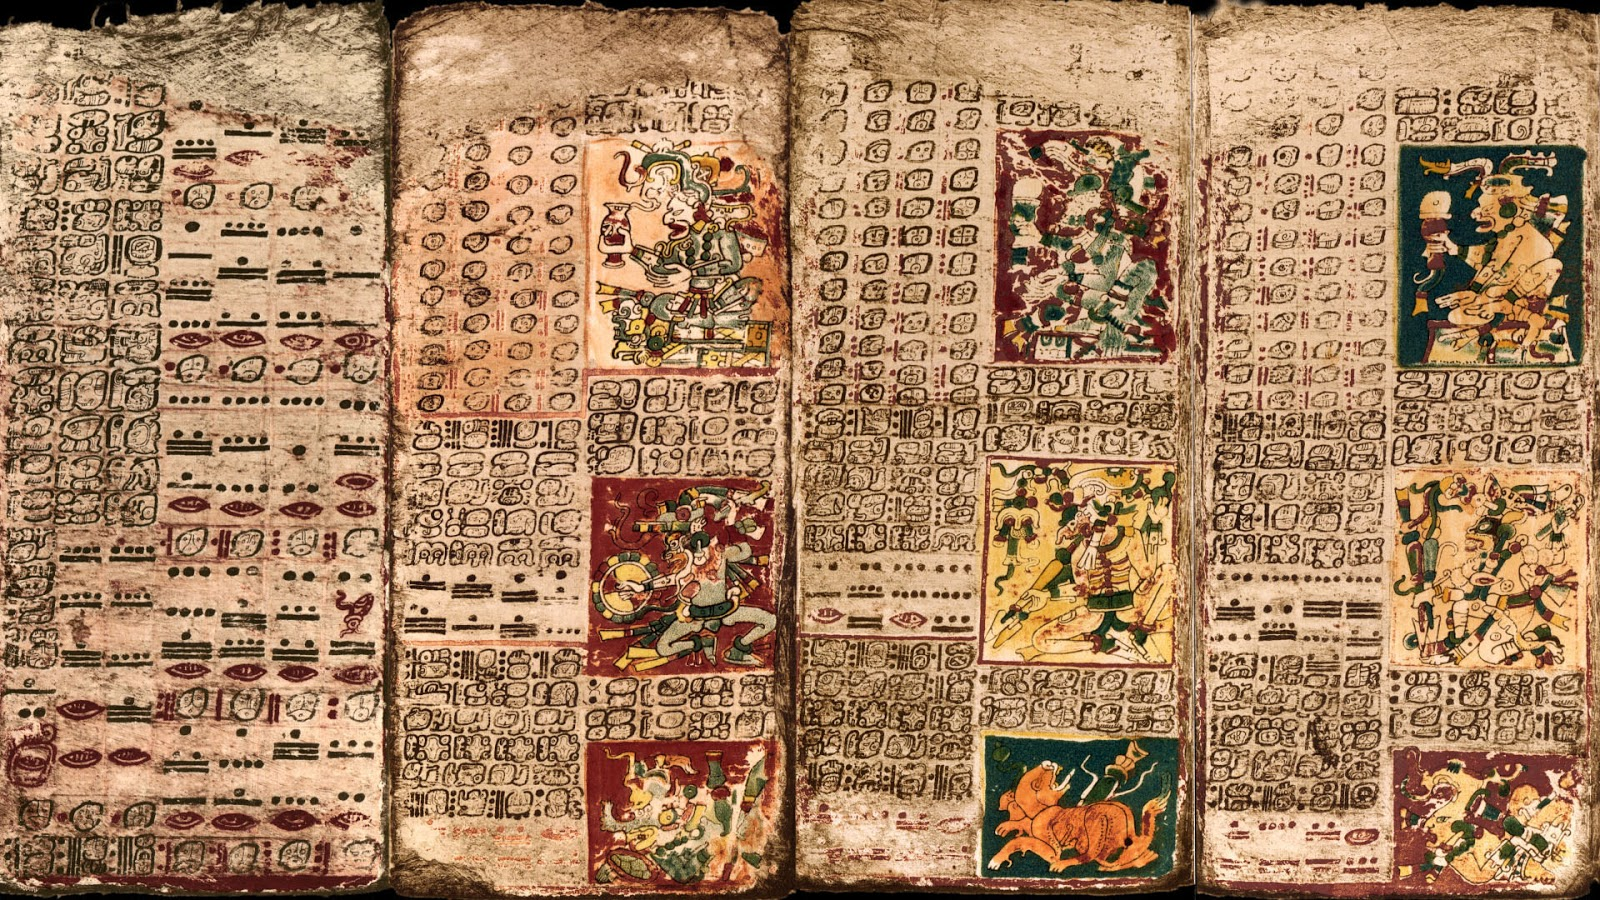 mayan knowledge of astronomy - photo #38